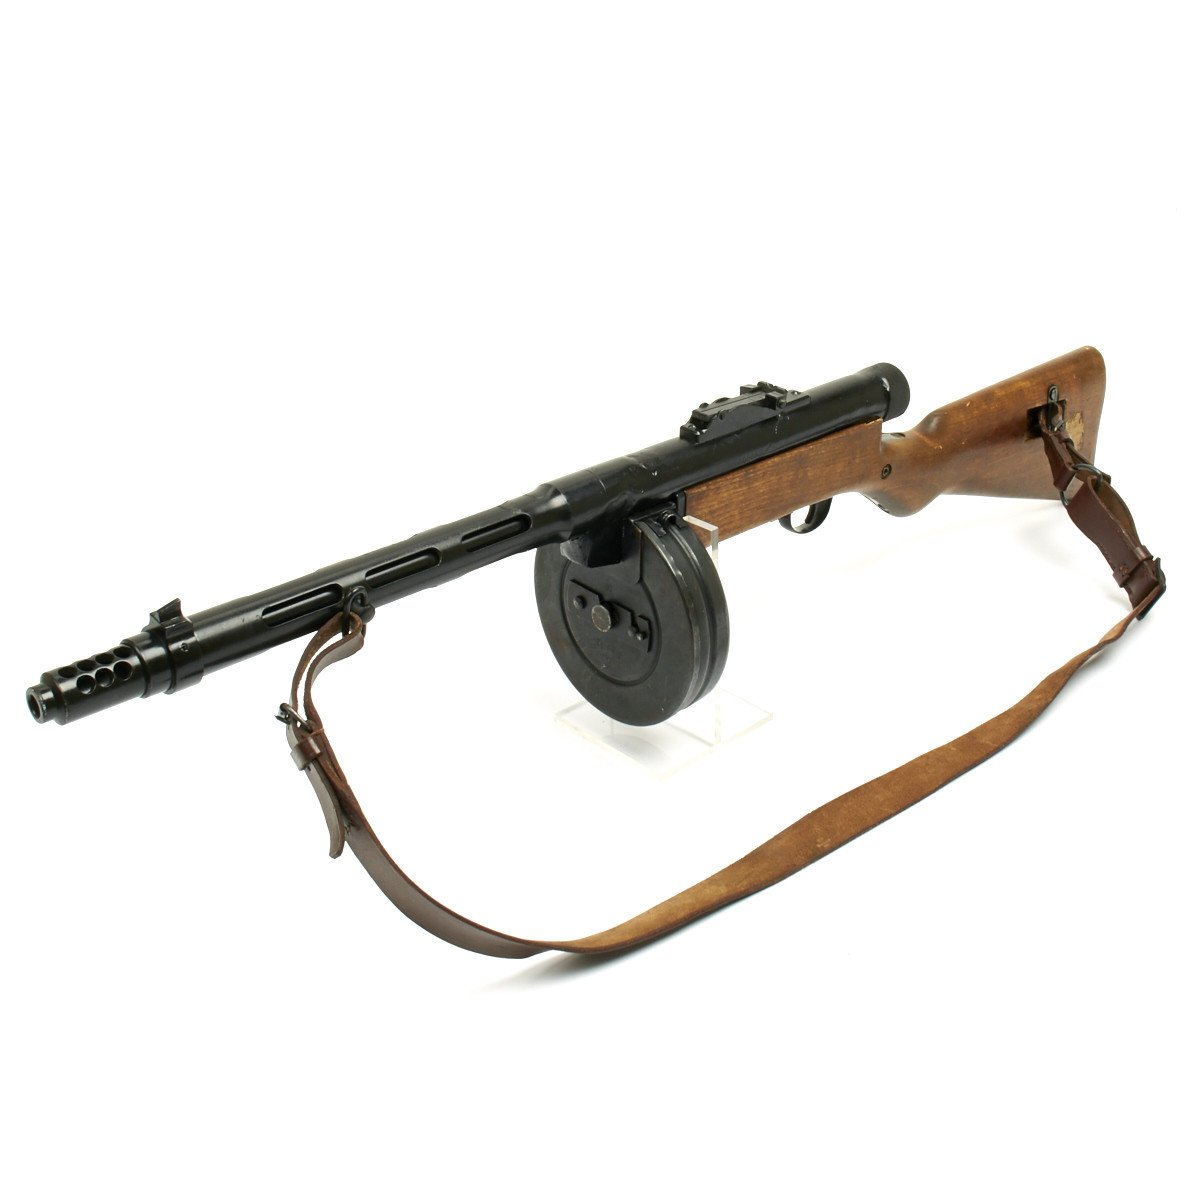 Original Finnish Wwii Suomi Kp 31 M31 Display 9mm Smg With Drum